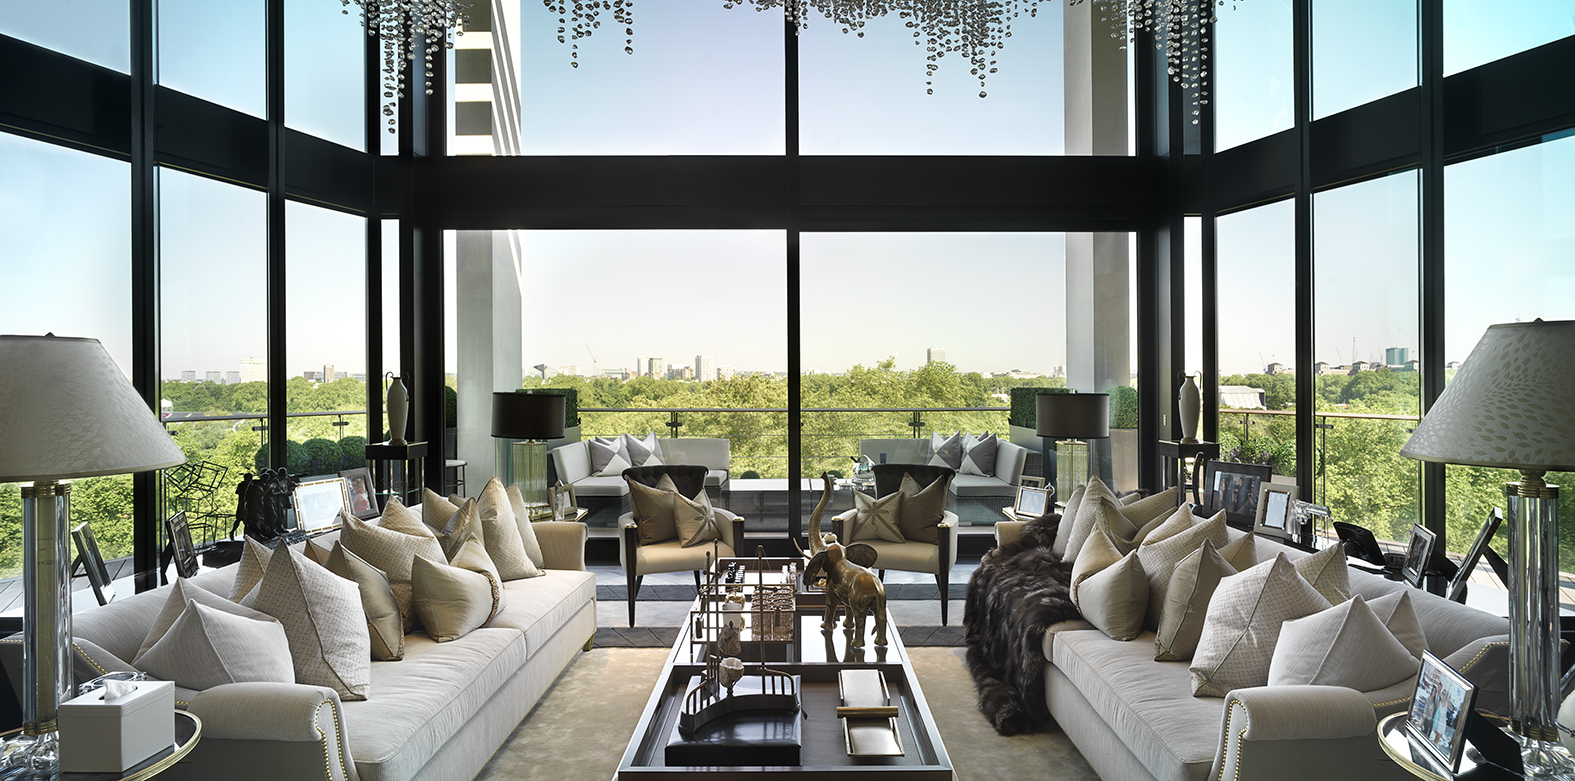 Luxury Tech Gifts One Hyde Park Penthouse London2luxury2 Com